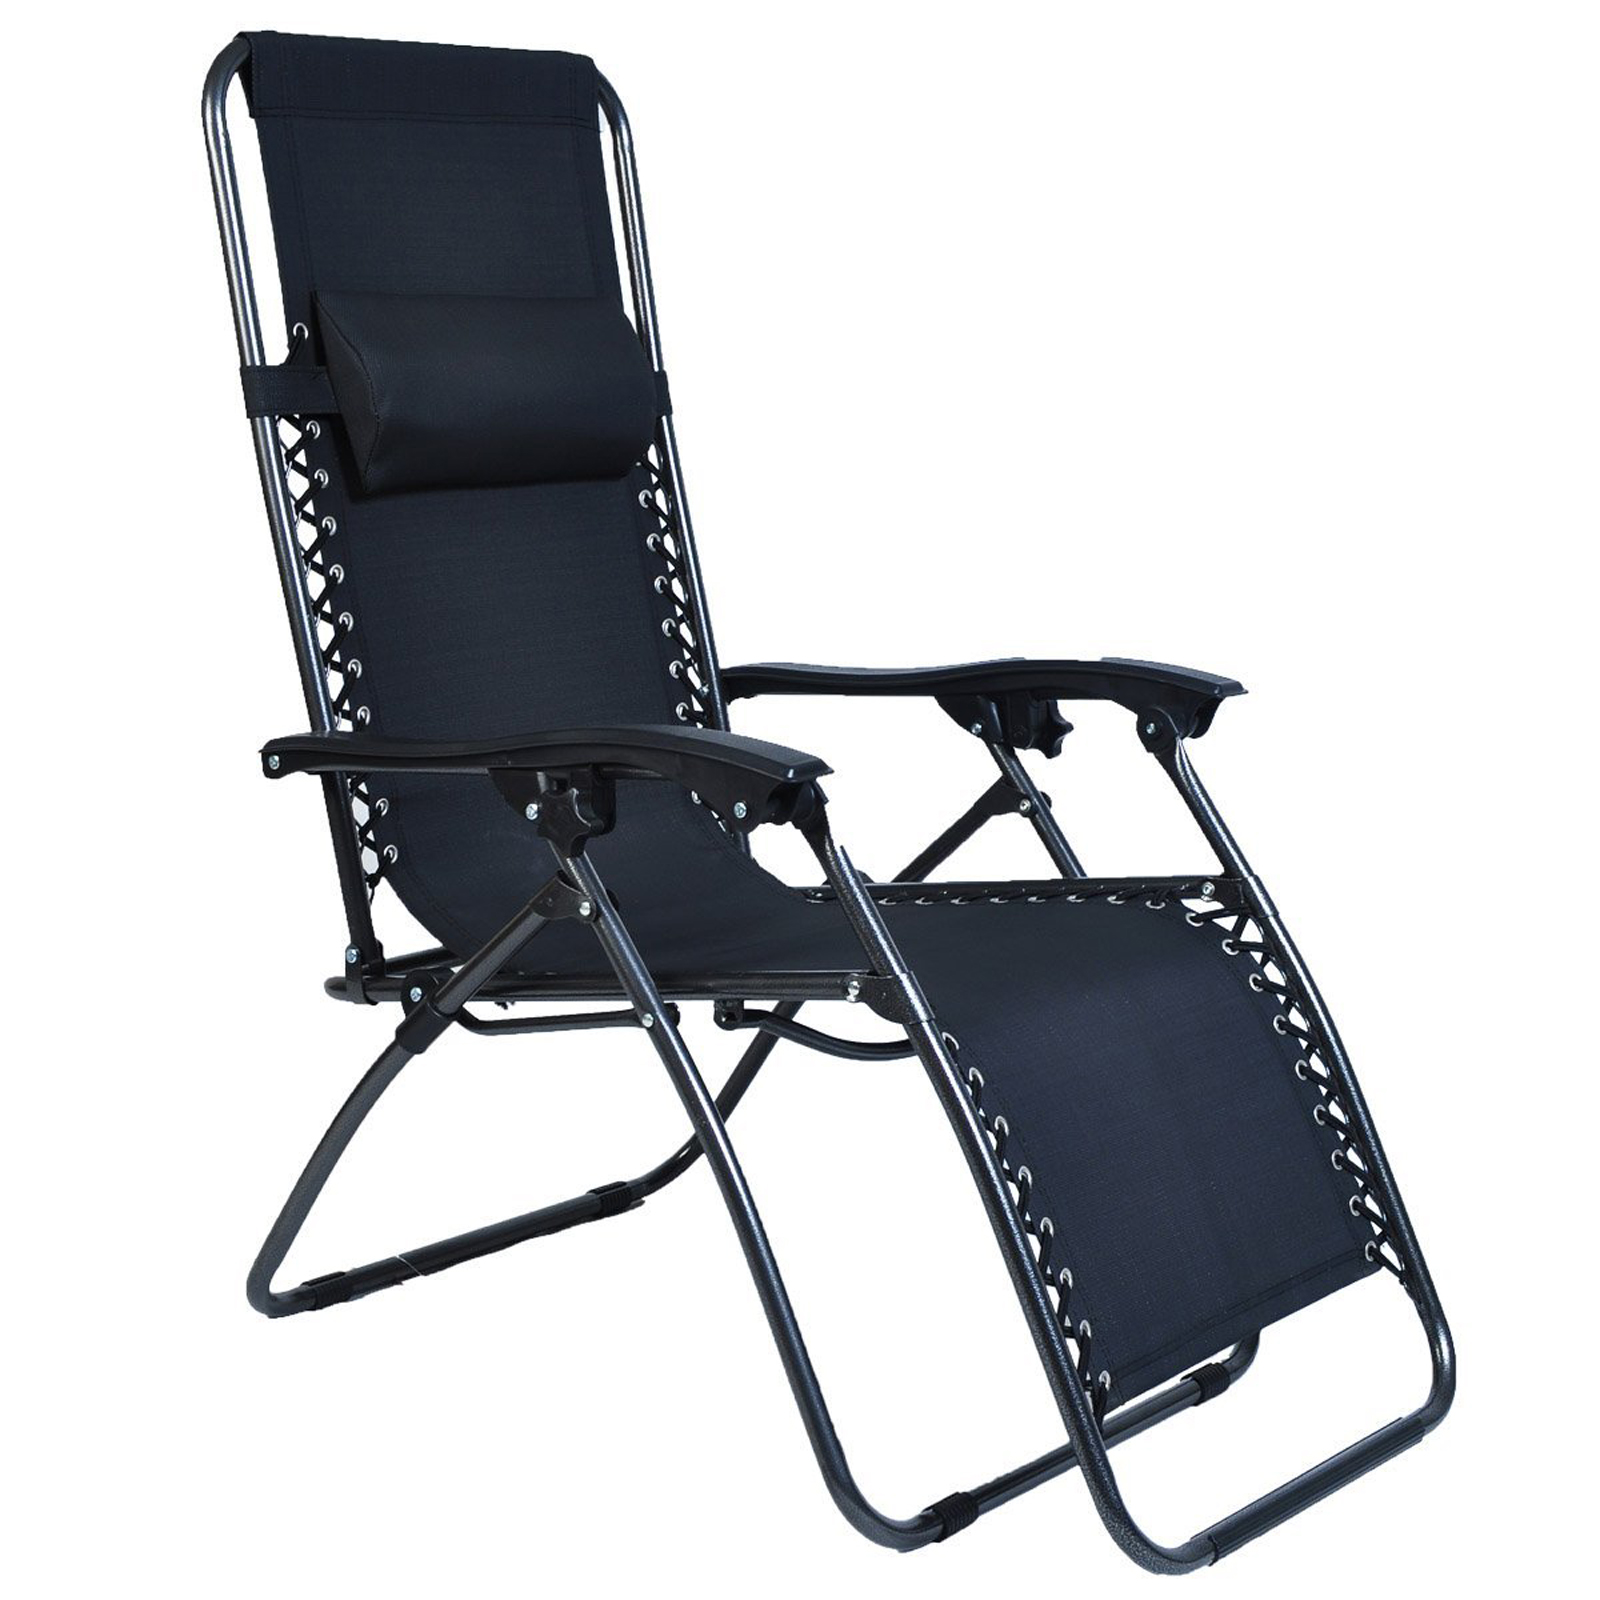 Patio Folding Chairs Zero Folding Patio Outdoor Lounge Gravity Chair Recliner